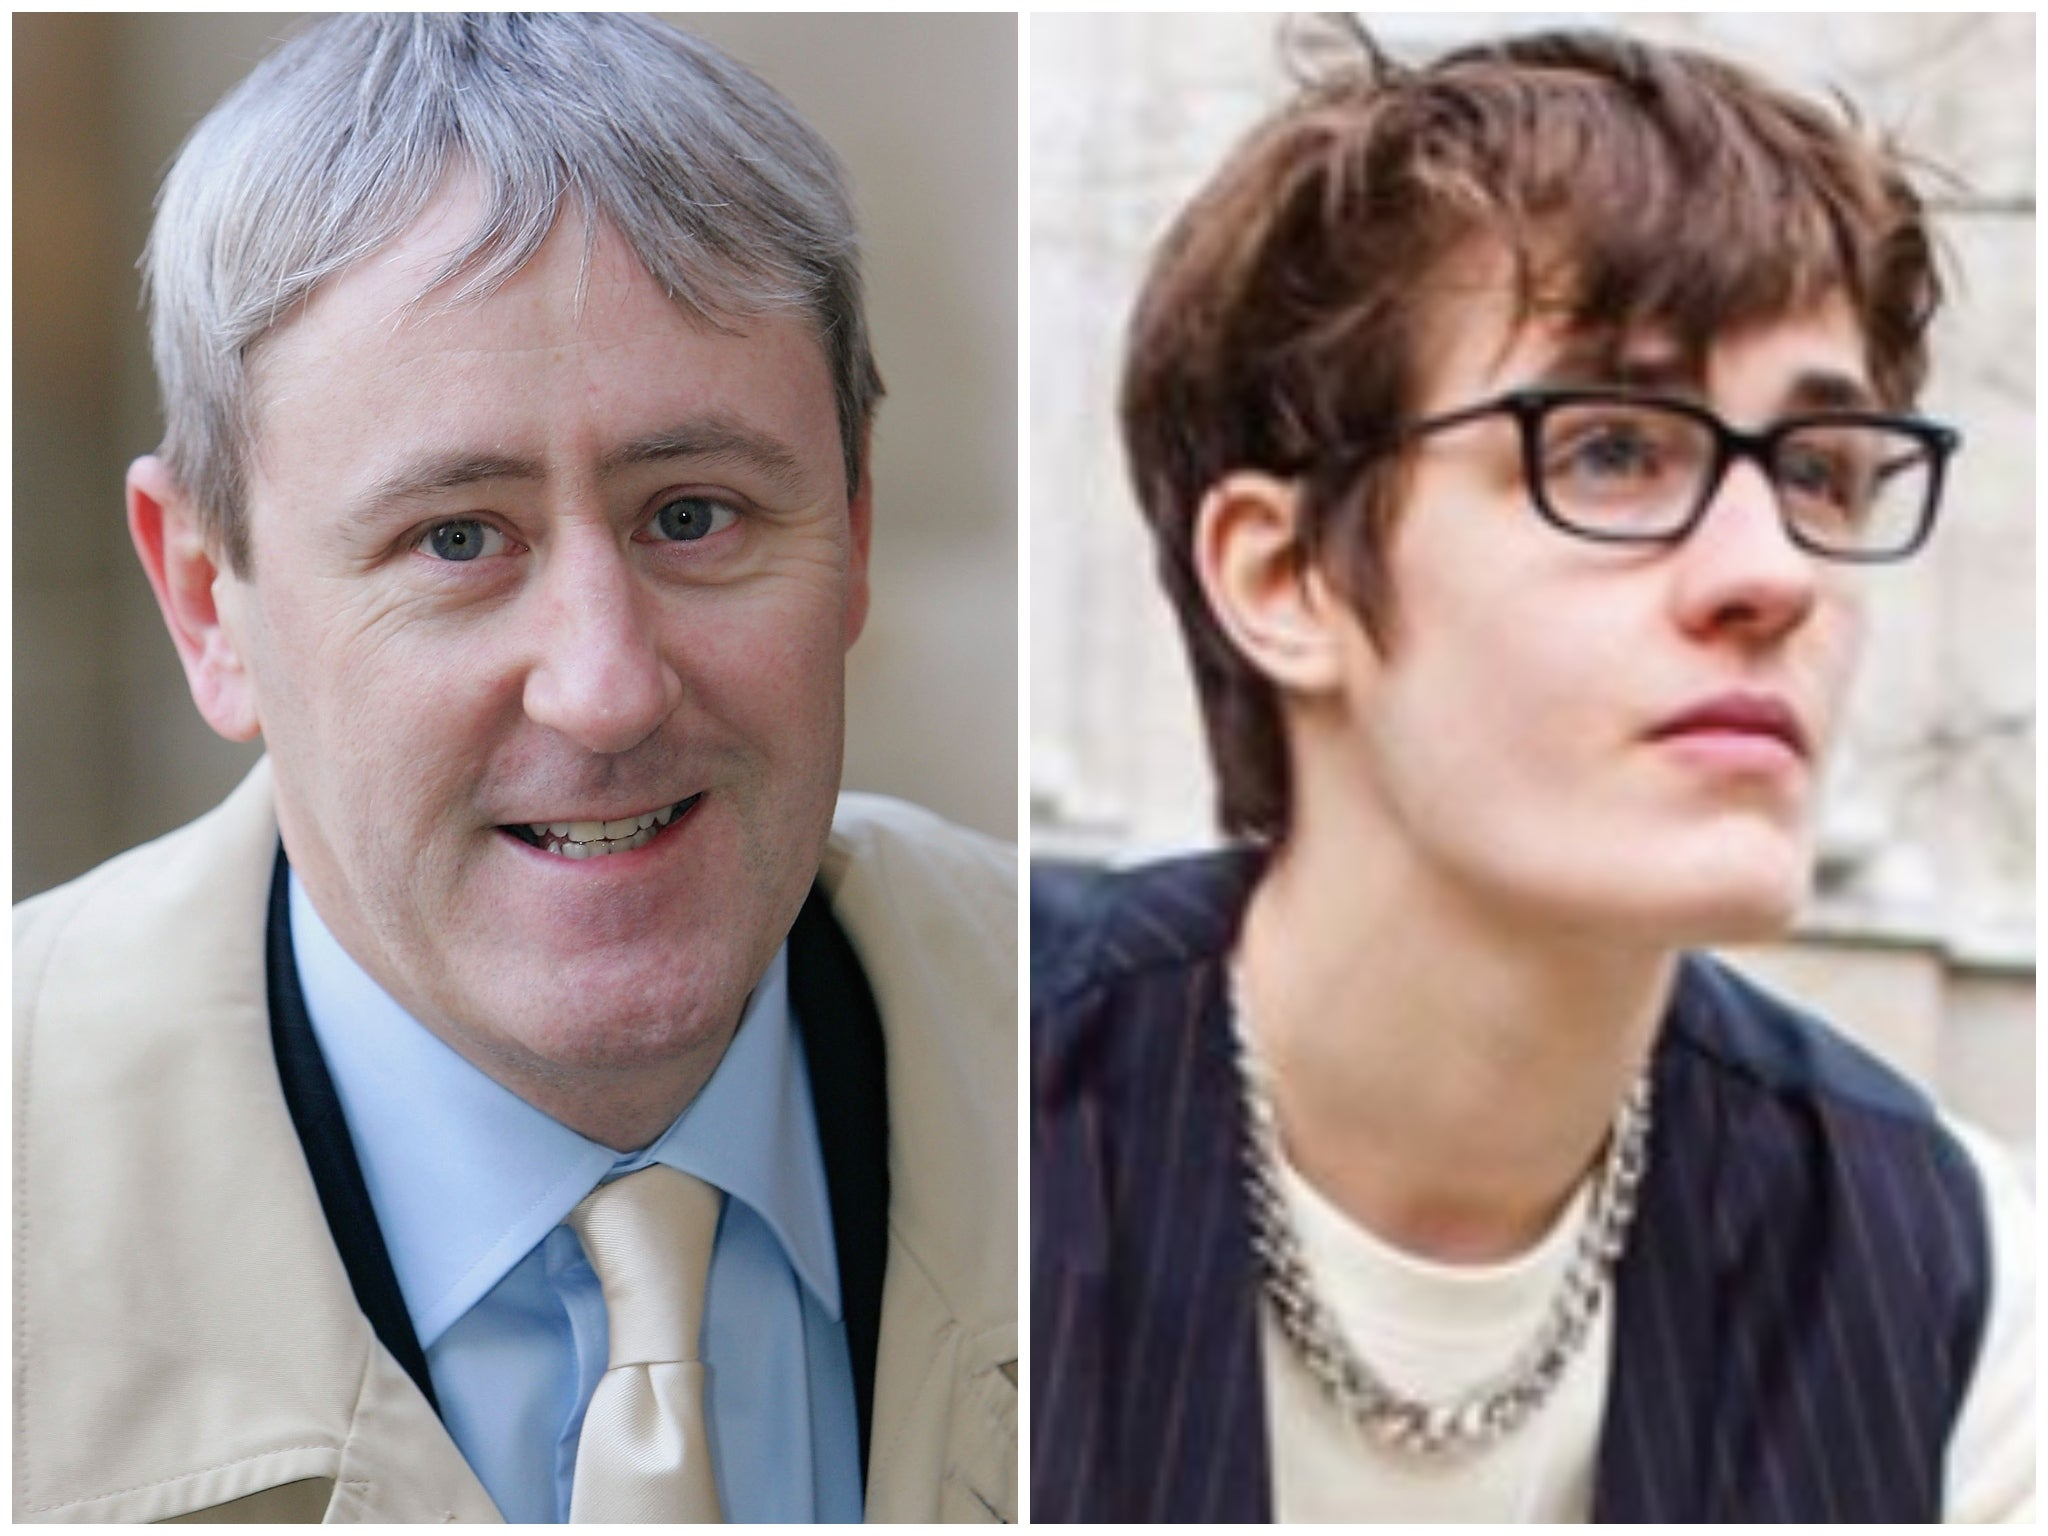 Nicholas Lyndhurst Only Fools And Horses Actor Speaks Out For First Time Since Death Of Son Archie Aged 19 The Independent